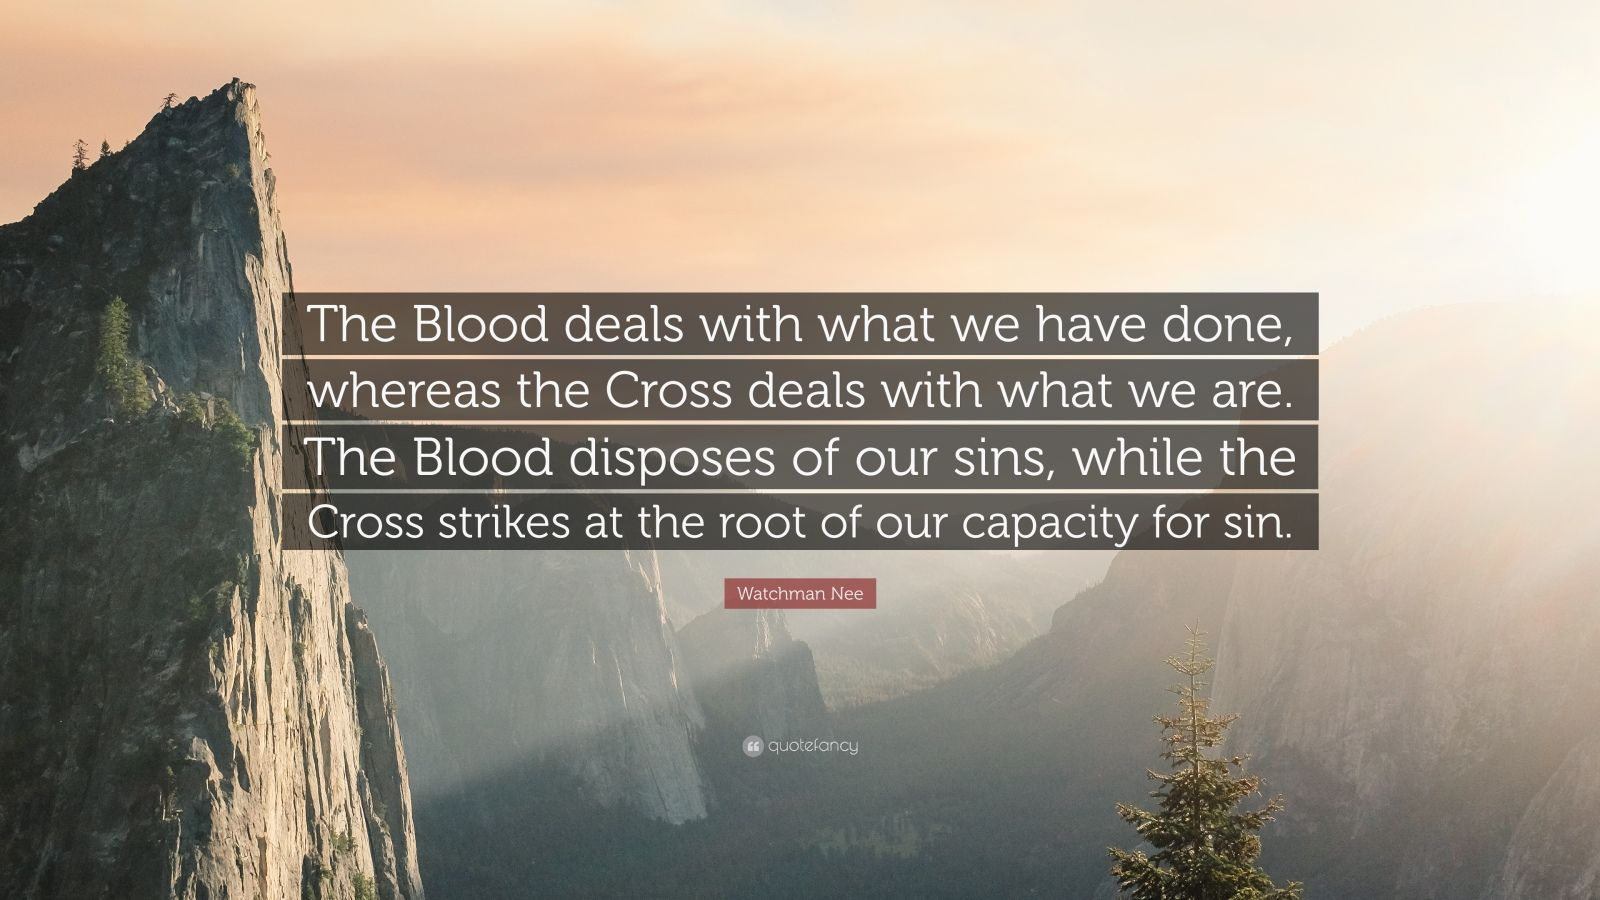 """Watchman Nee Quote: """"The Blood deals with what we have done, whereas the Cross deals with what we are. The Blood disposes of our sins, while the Cross strikes at the root of our capacity for sin."""""""